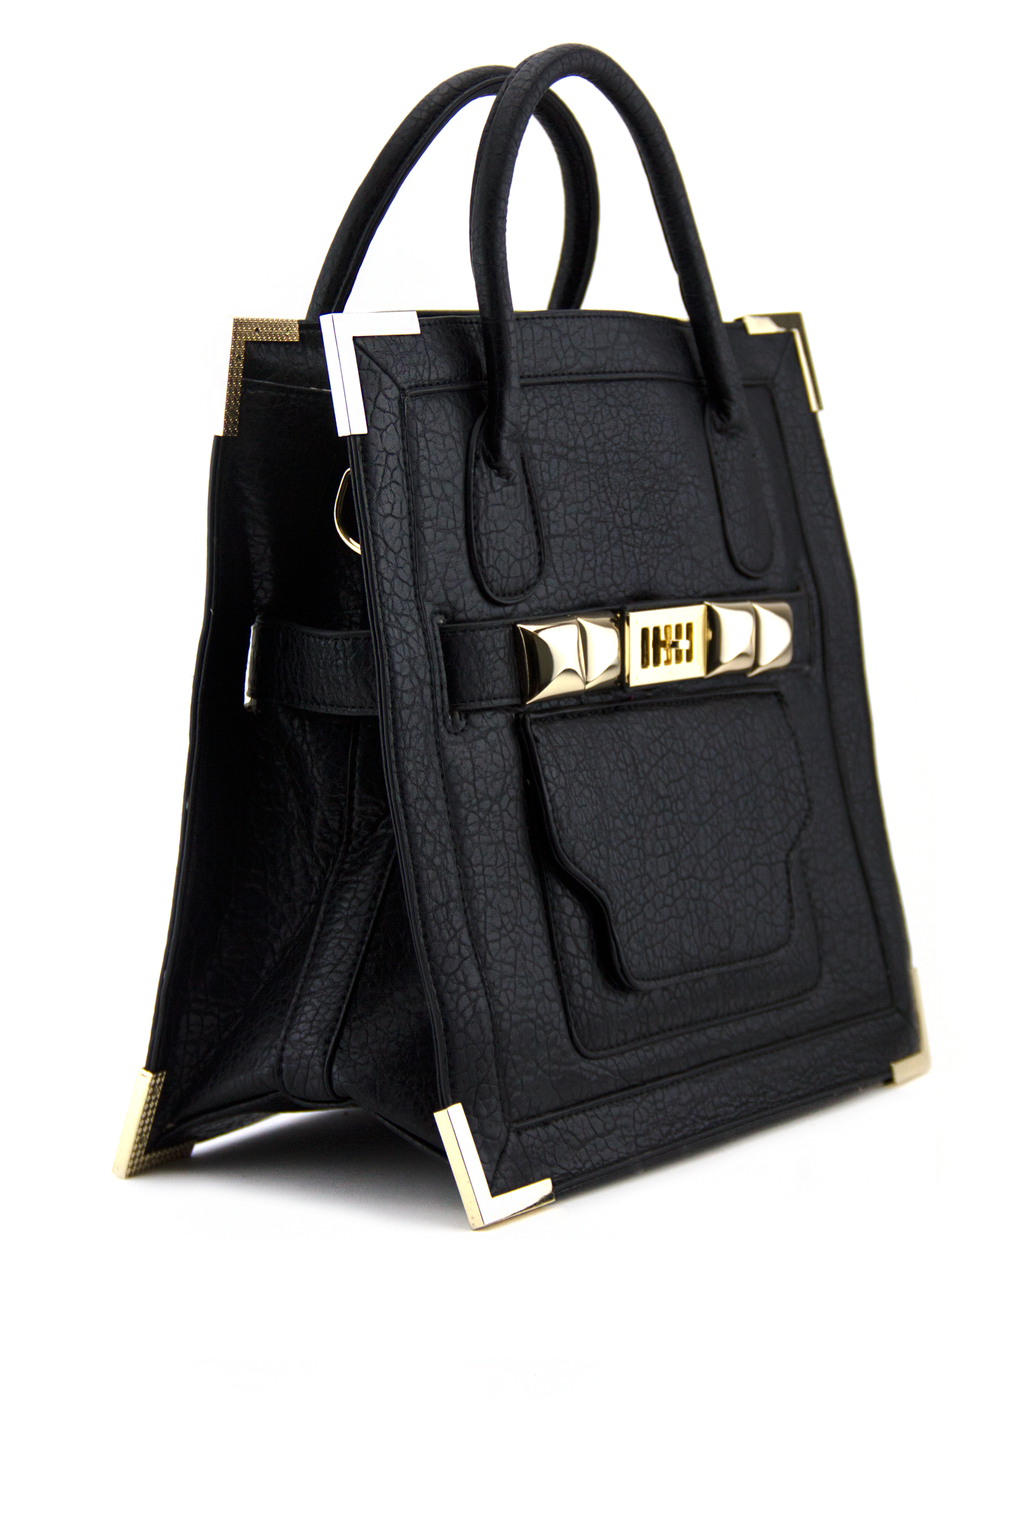 RENZO SQUARE HANDLE TOTE - Haute & Rebellious